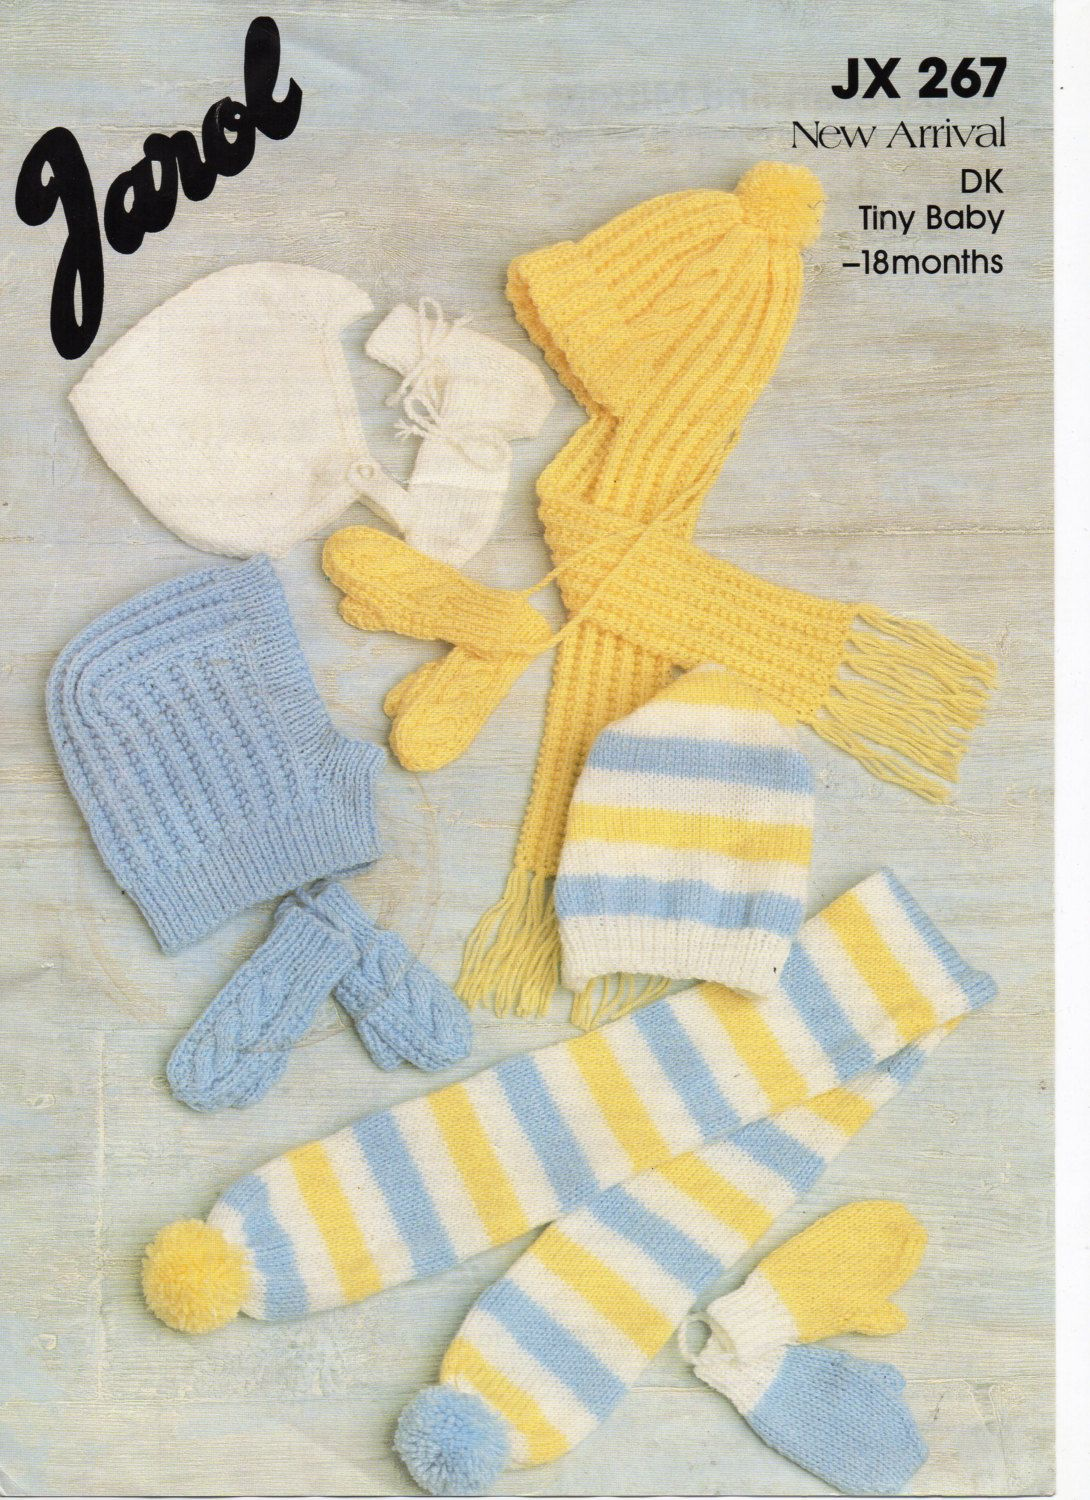 Baby hats scarf mitts knitting pattern cap balaclava helmet baby hats scarf mitts knitting pattern cap balaclava helmet mittens newborn 18mths dk bankloansurffo Images